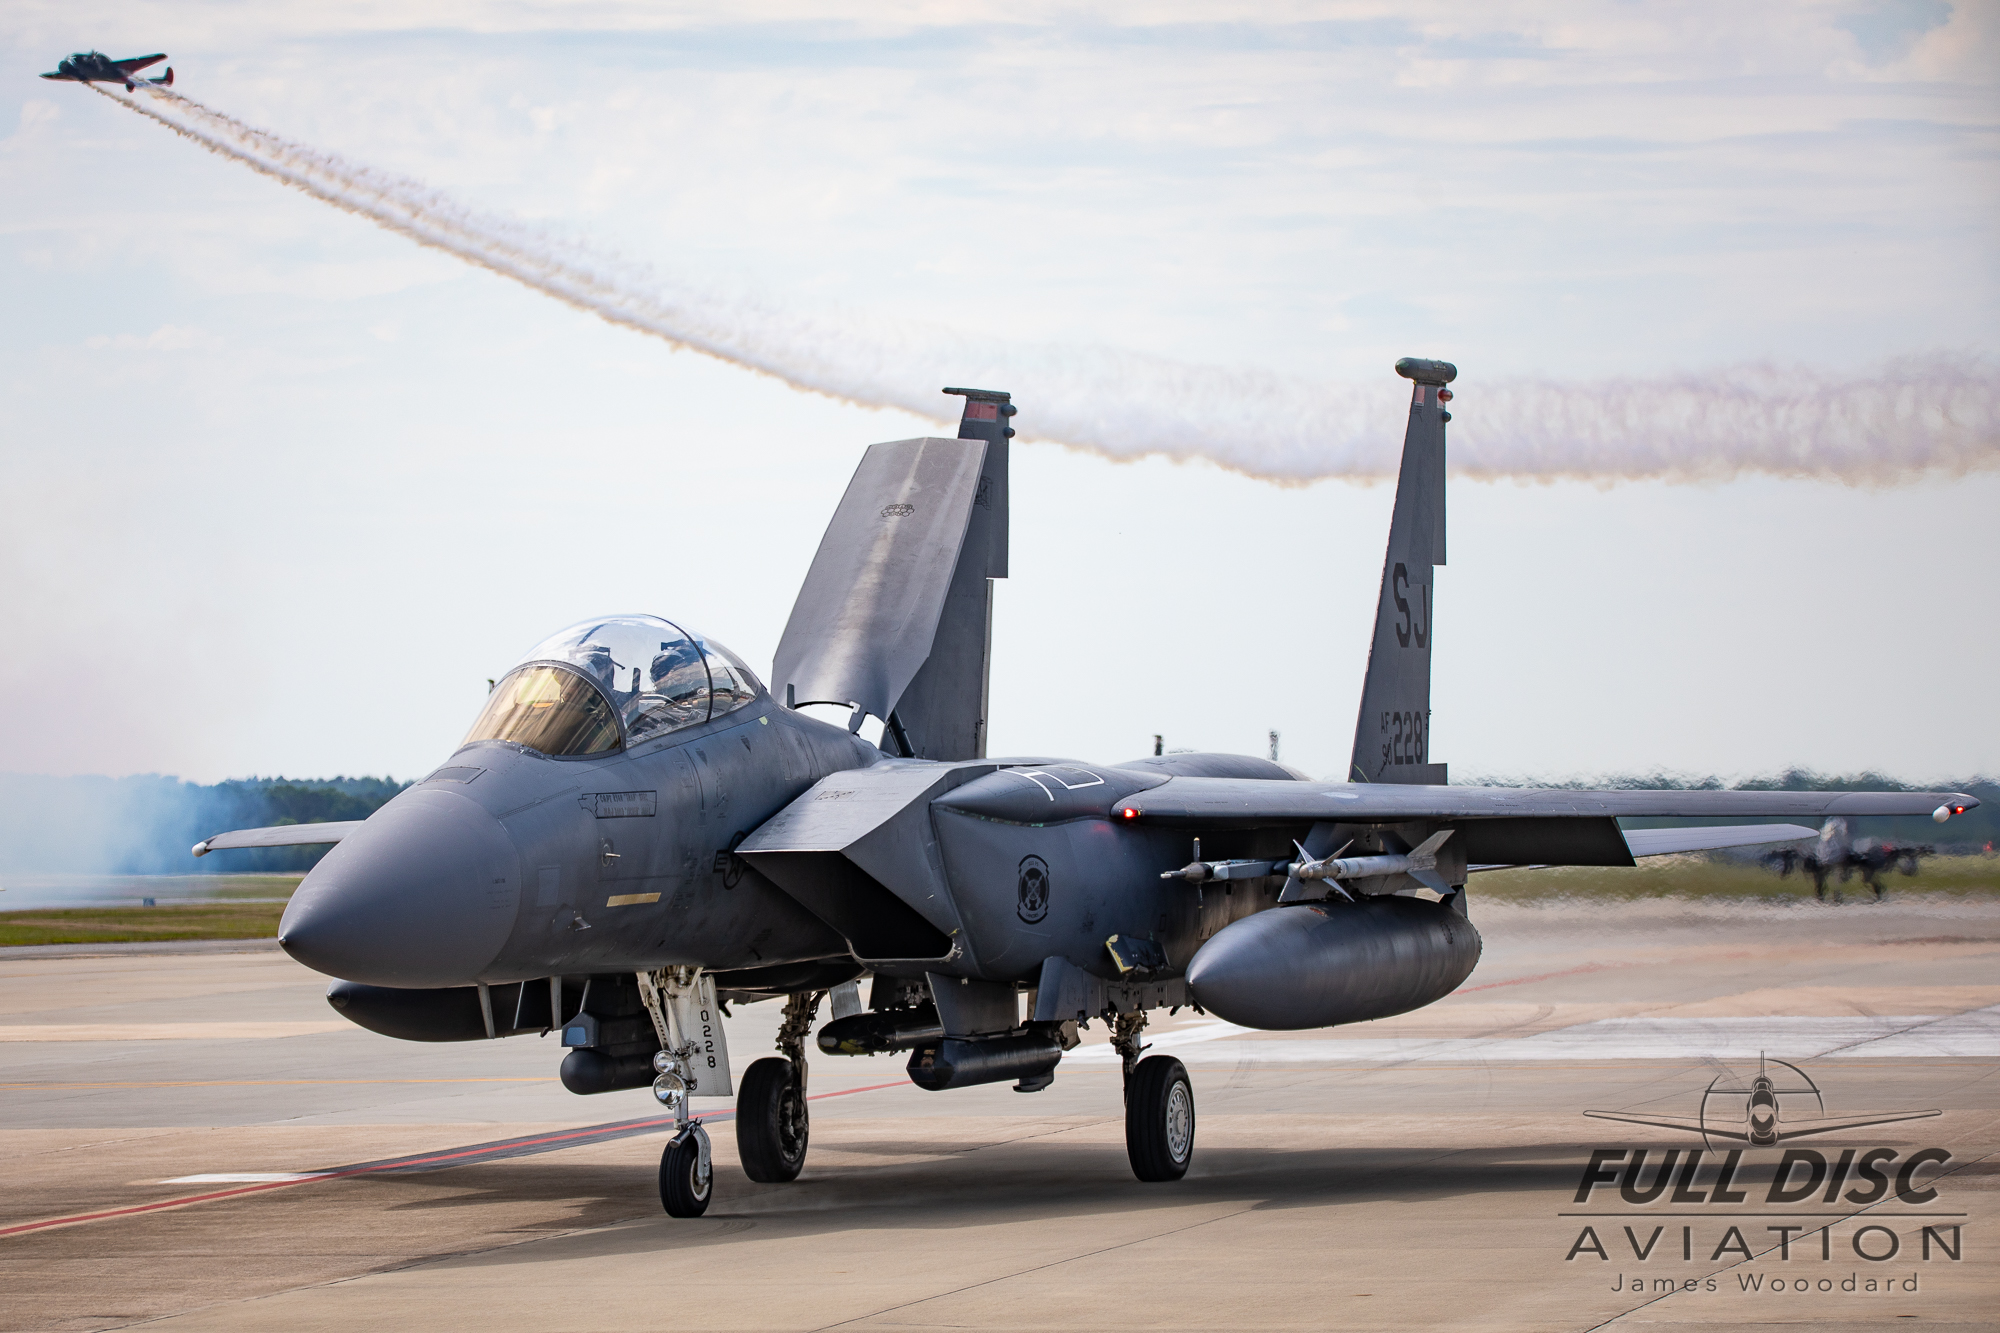 WingsOverWayne_FullDiscAviation_JamesWoodard__-April 28, 2019-09.jpg